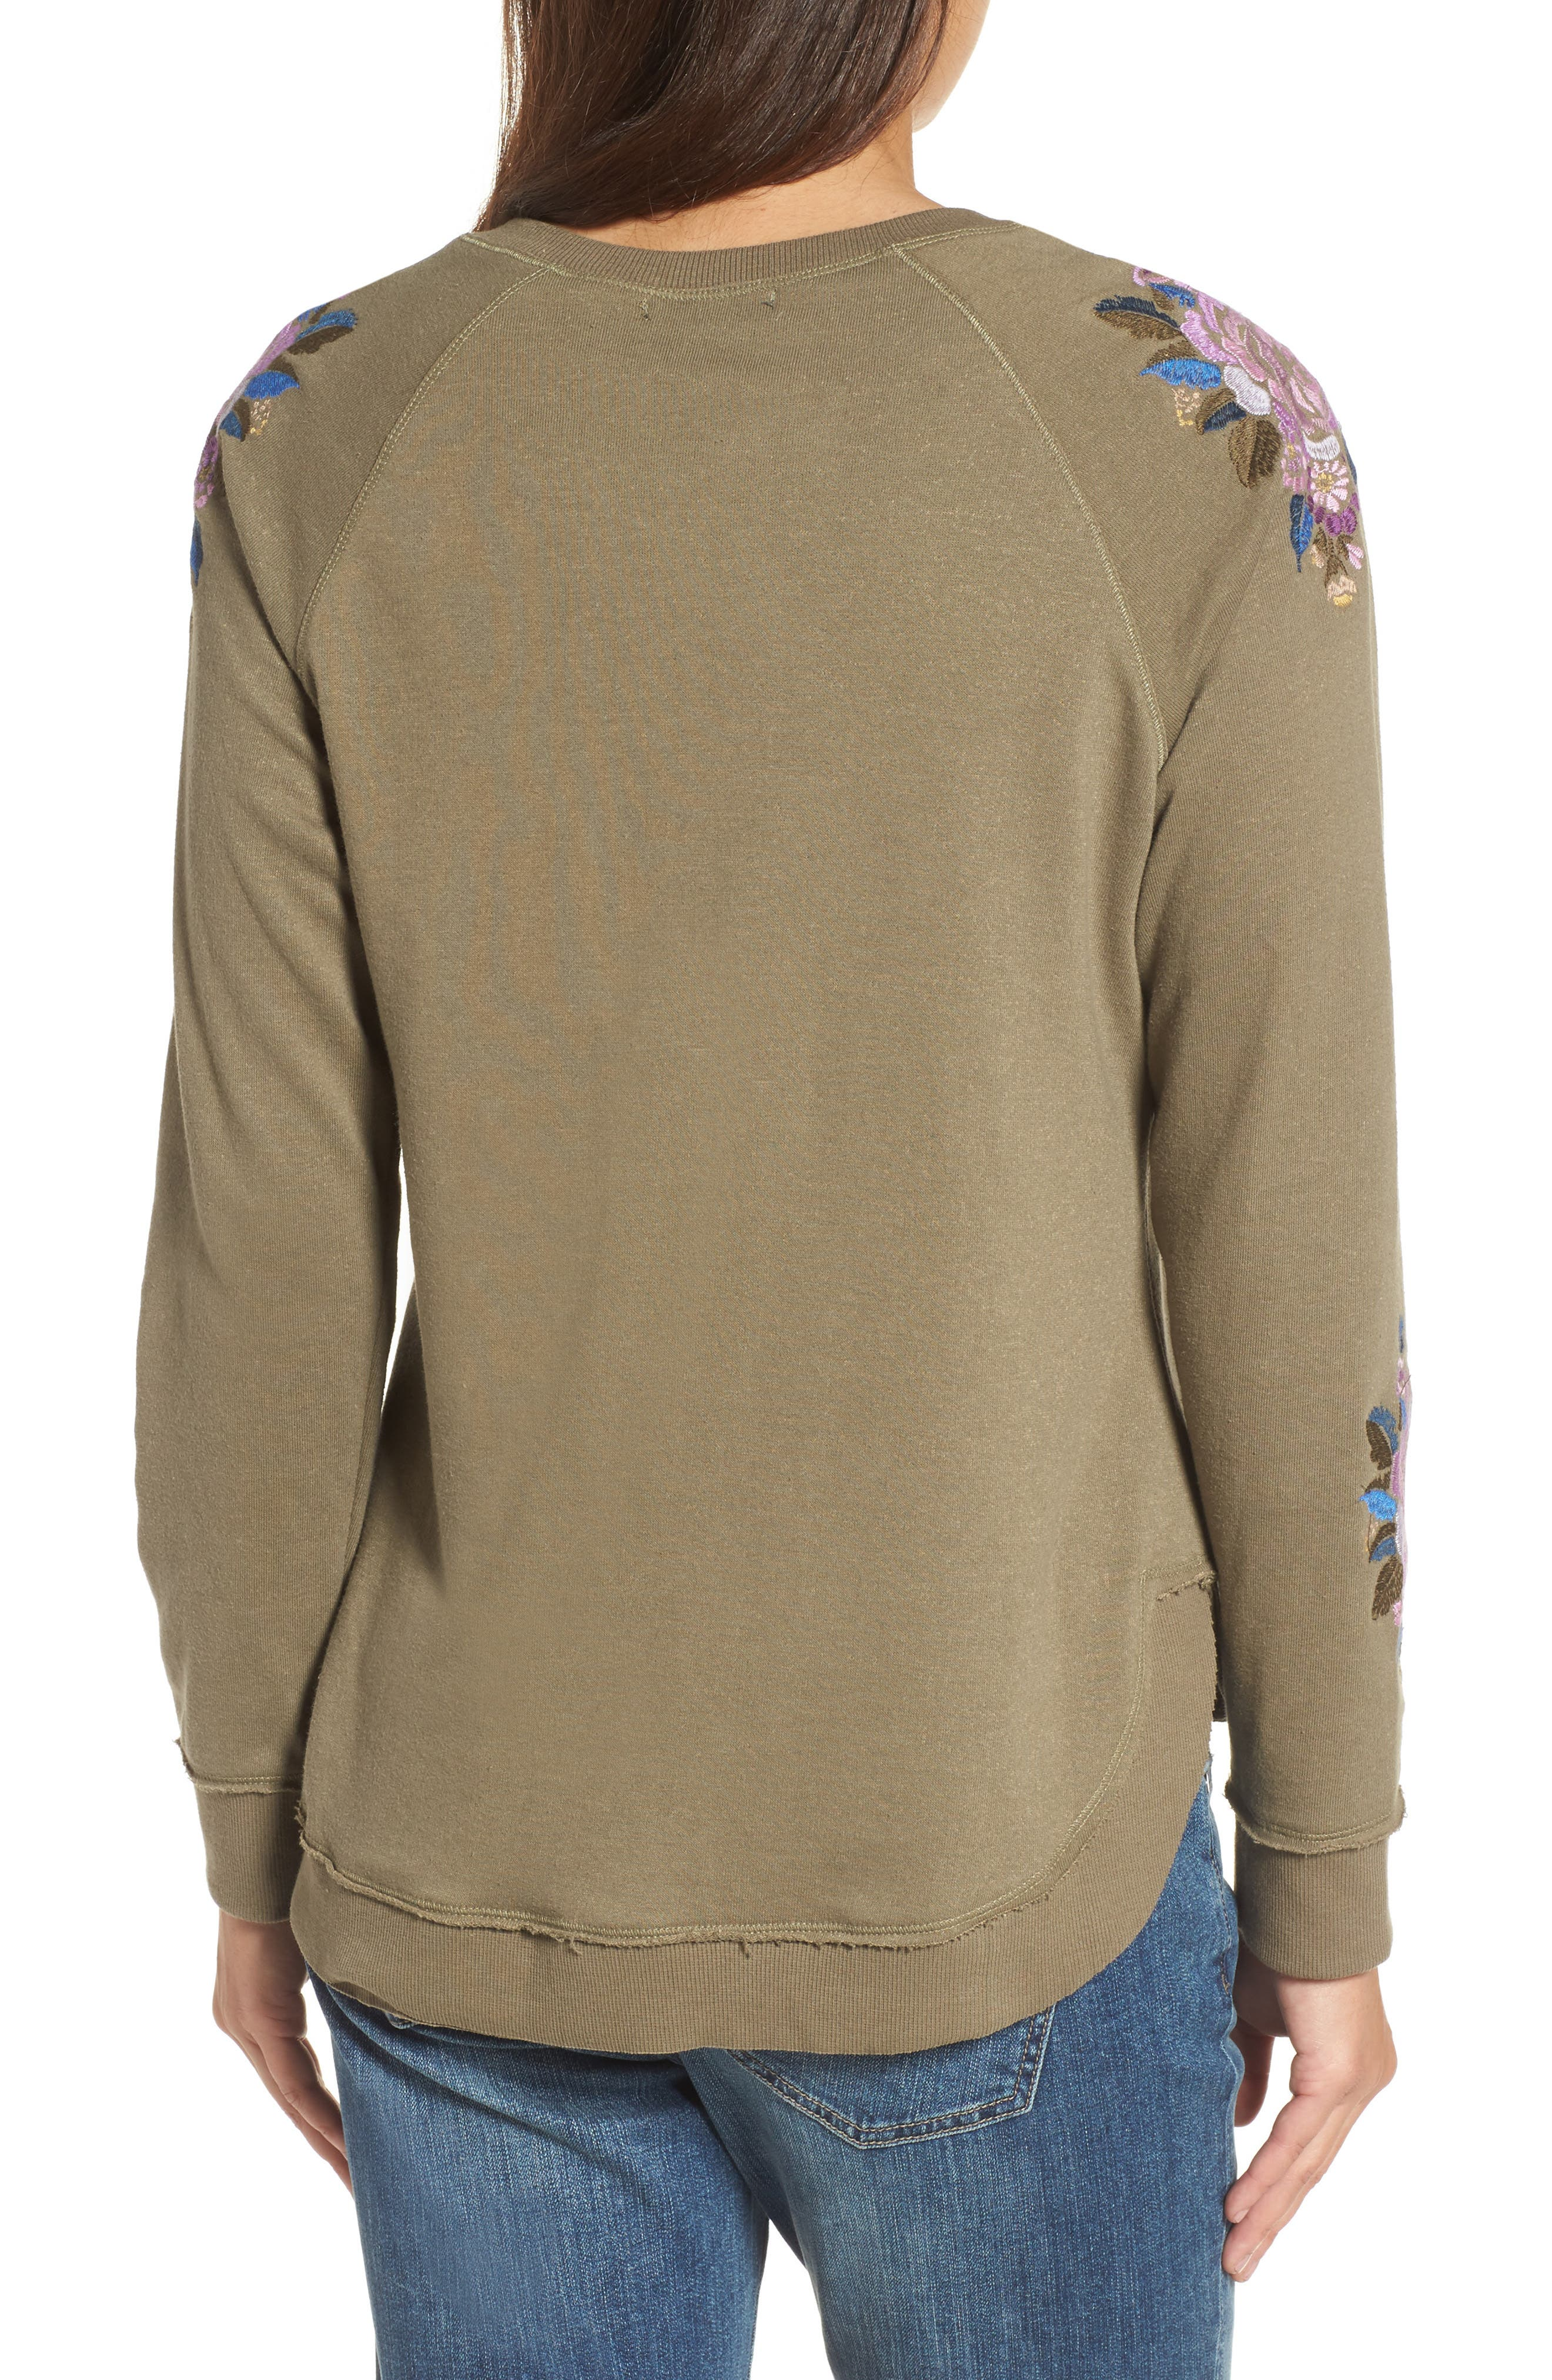 Embroidered Sweater,                             Alternate thumbnail 2, color,                             345